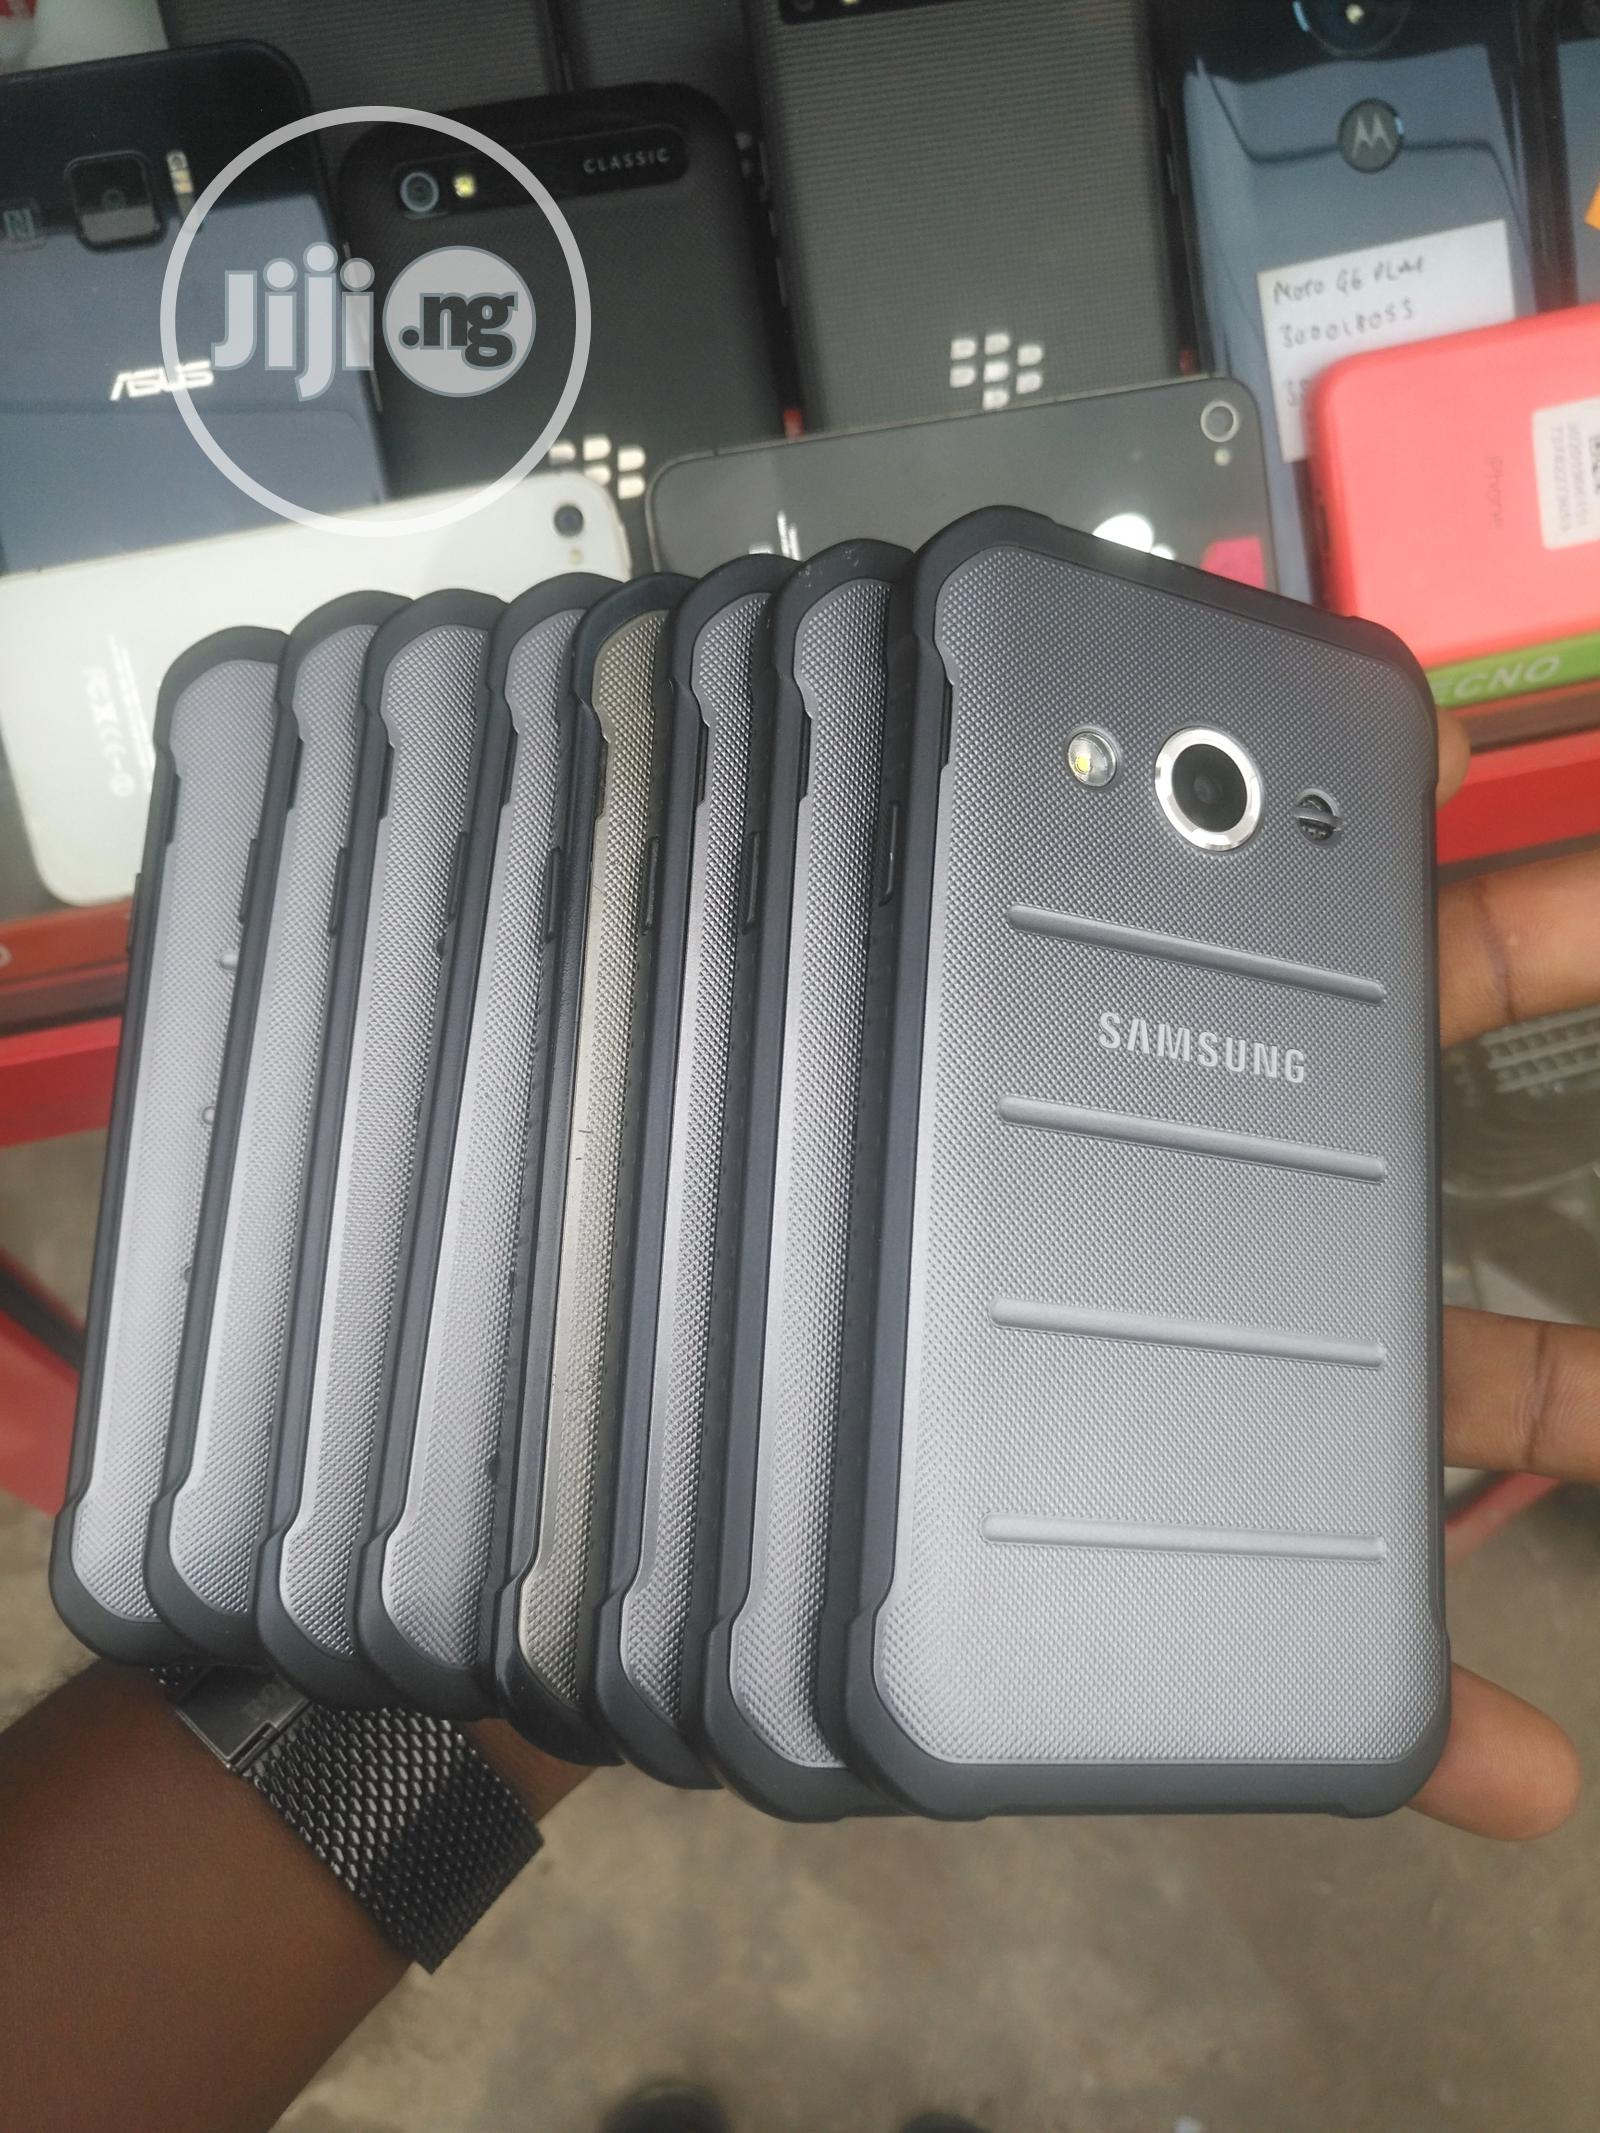 Samsung Galaxy Xcover 3 8 GB   Mobile Phones for sale in Ikeja, Lagos State, Nigeria